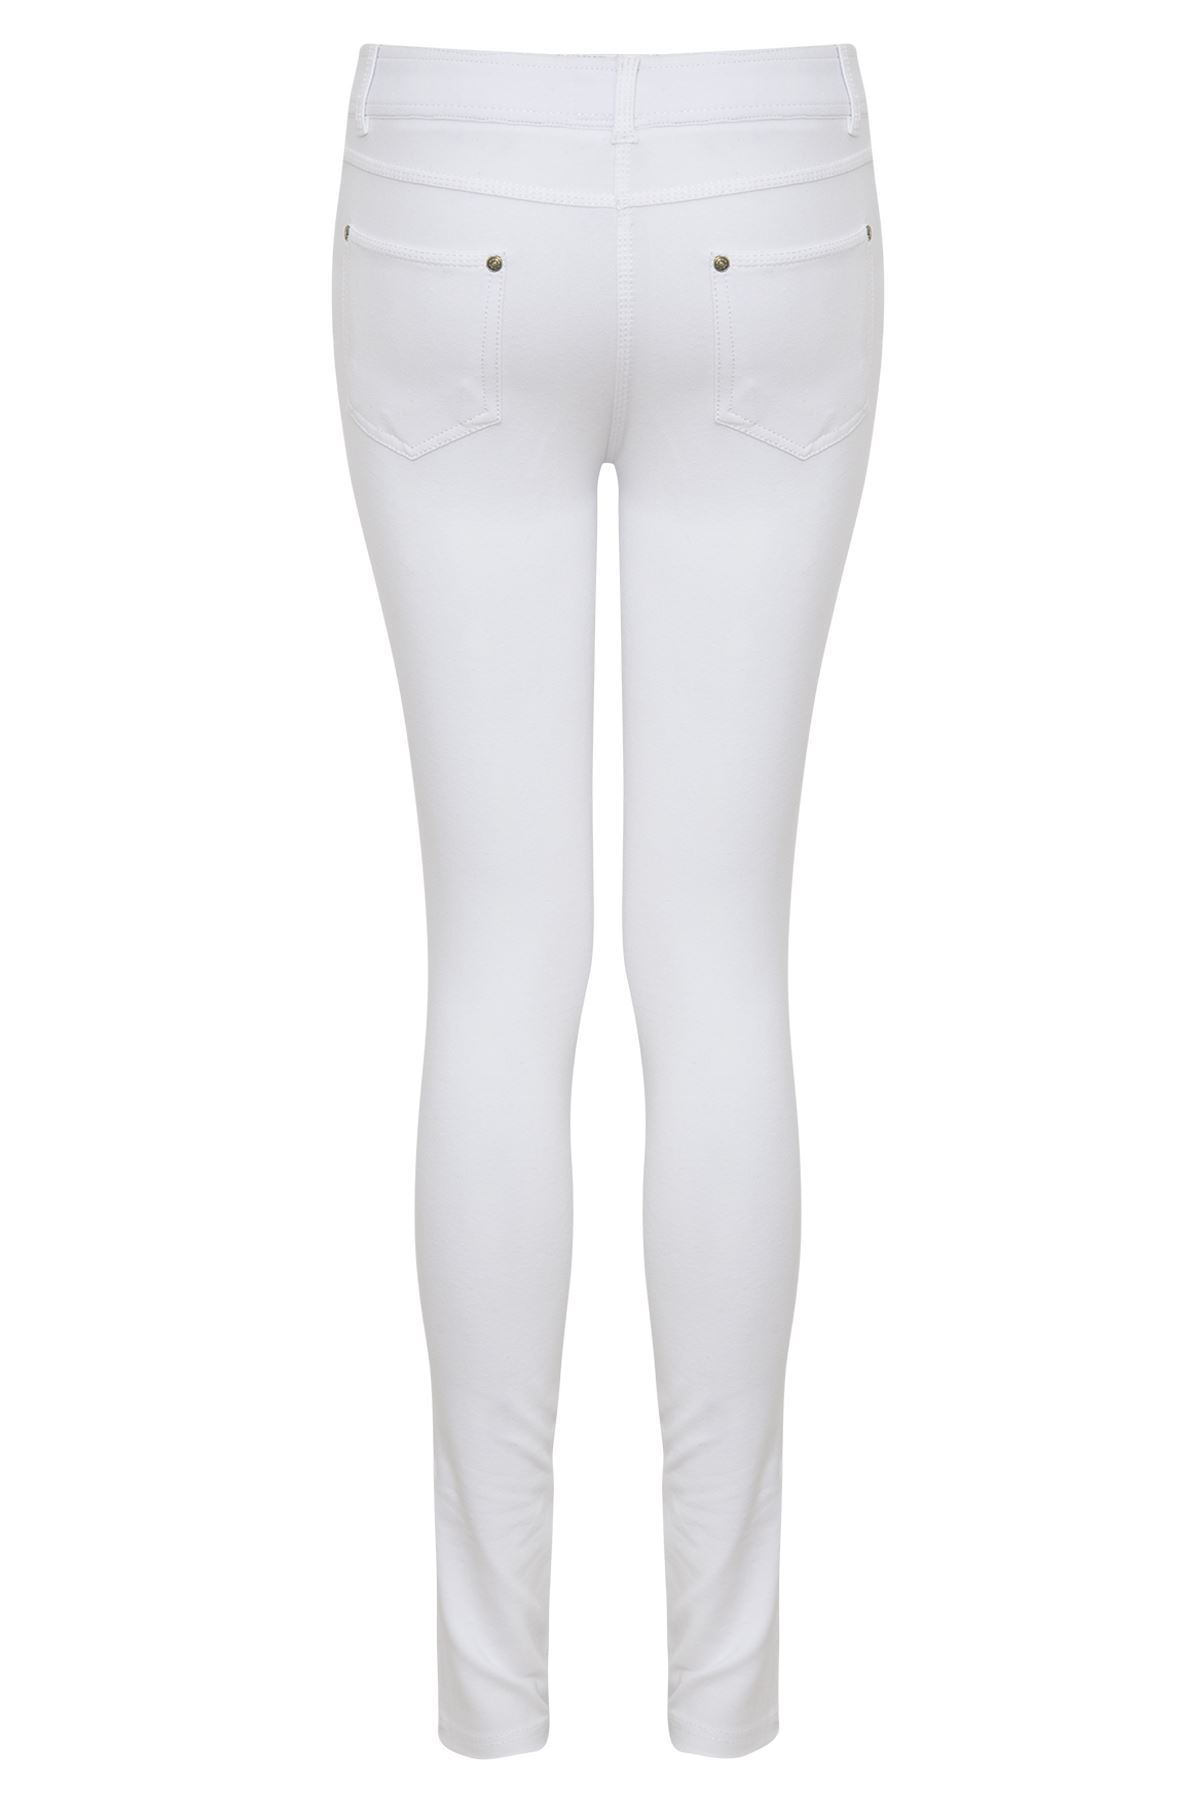 a077f7120b078f WOMENS LADIES SKIN FIT STRETCH TIGHT JEANS JEGGINGS LEGGINGS PANTS ...